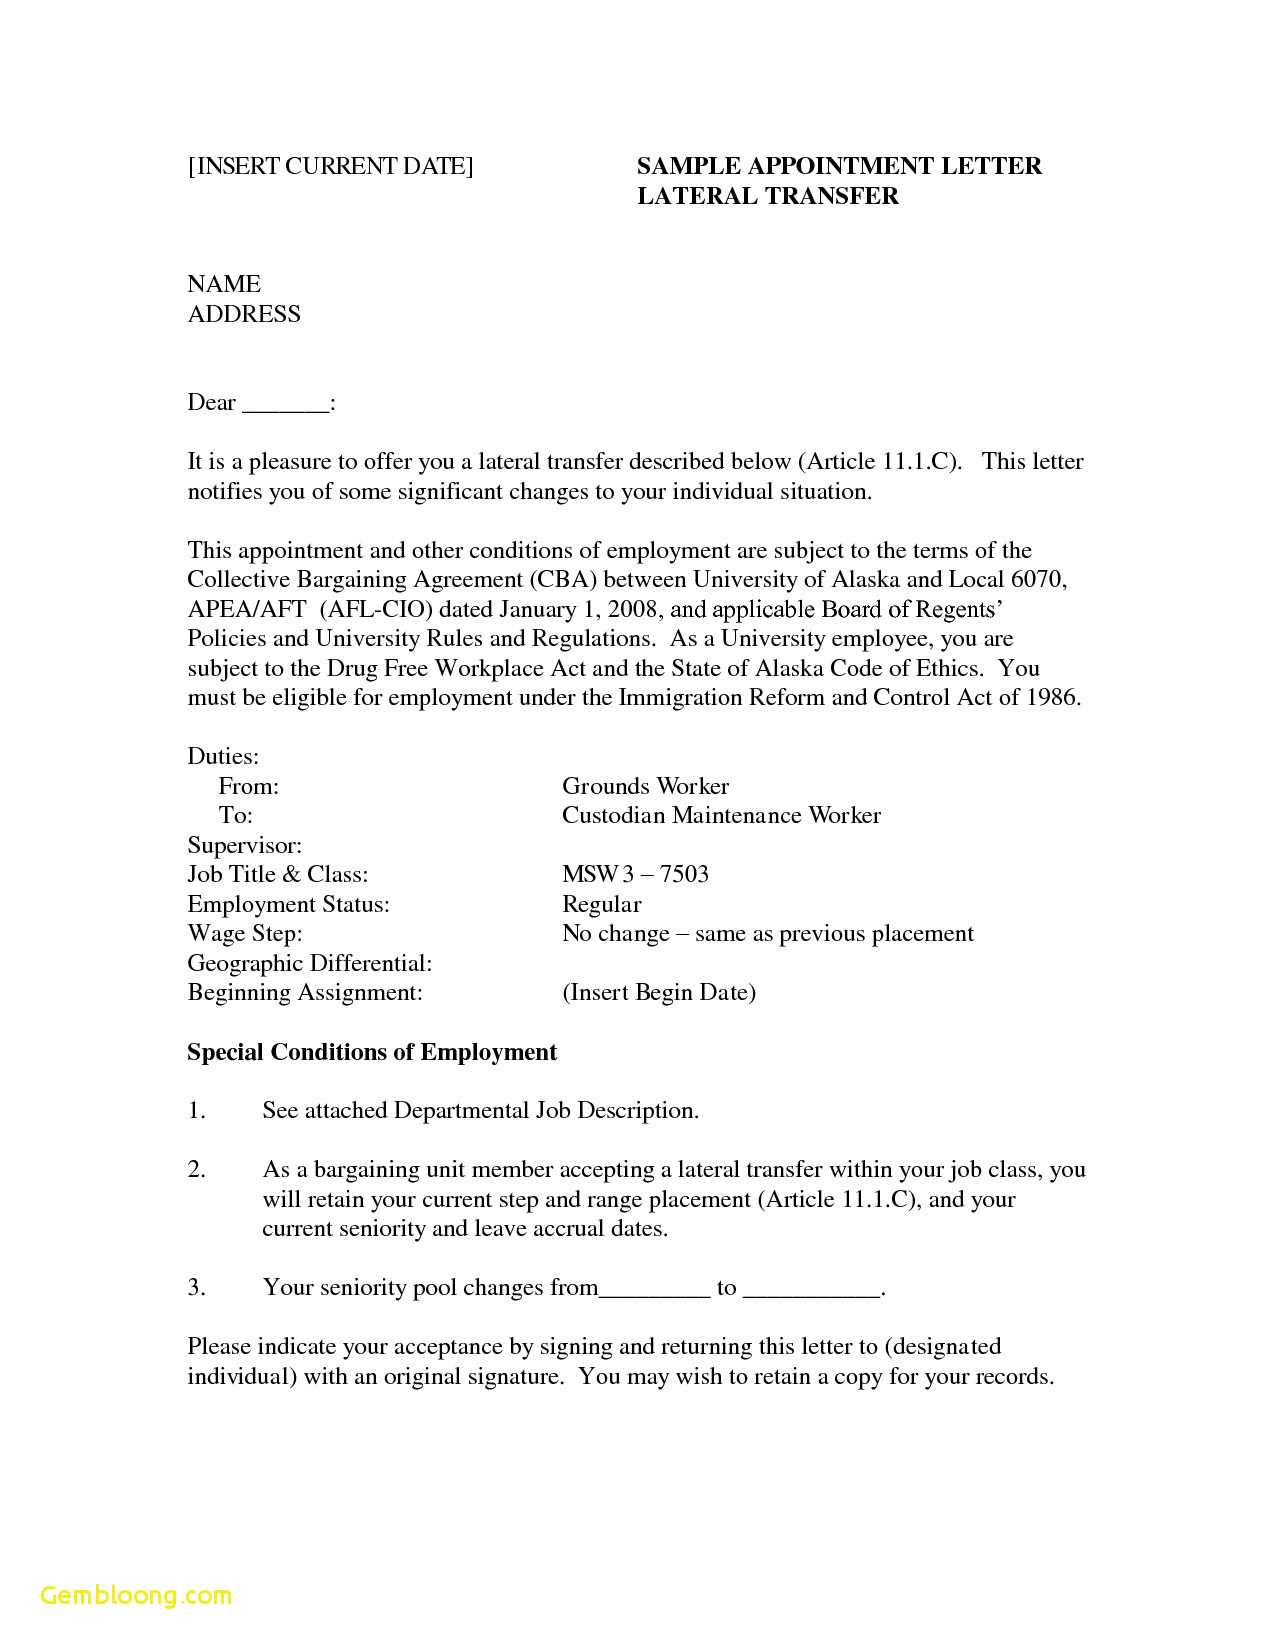 It Cover Letter Template Word - Resume with Template Download now Sample Resume In Word format